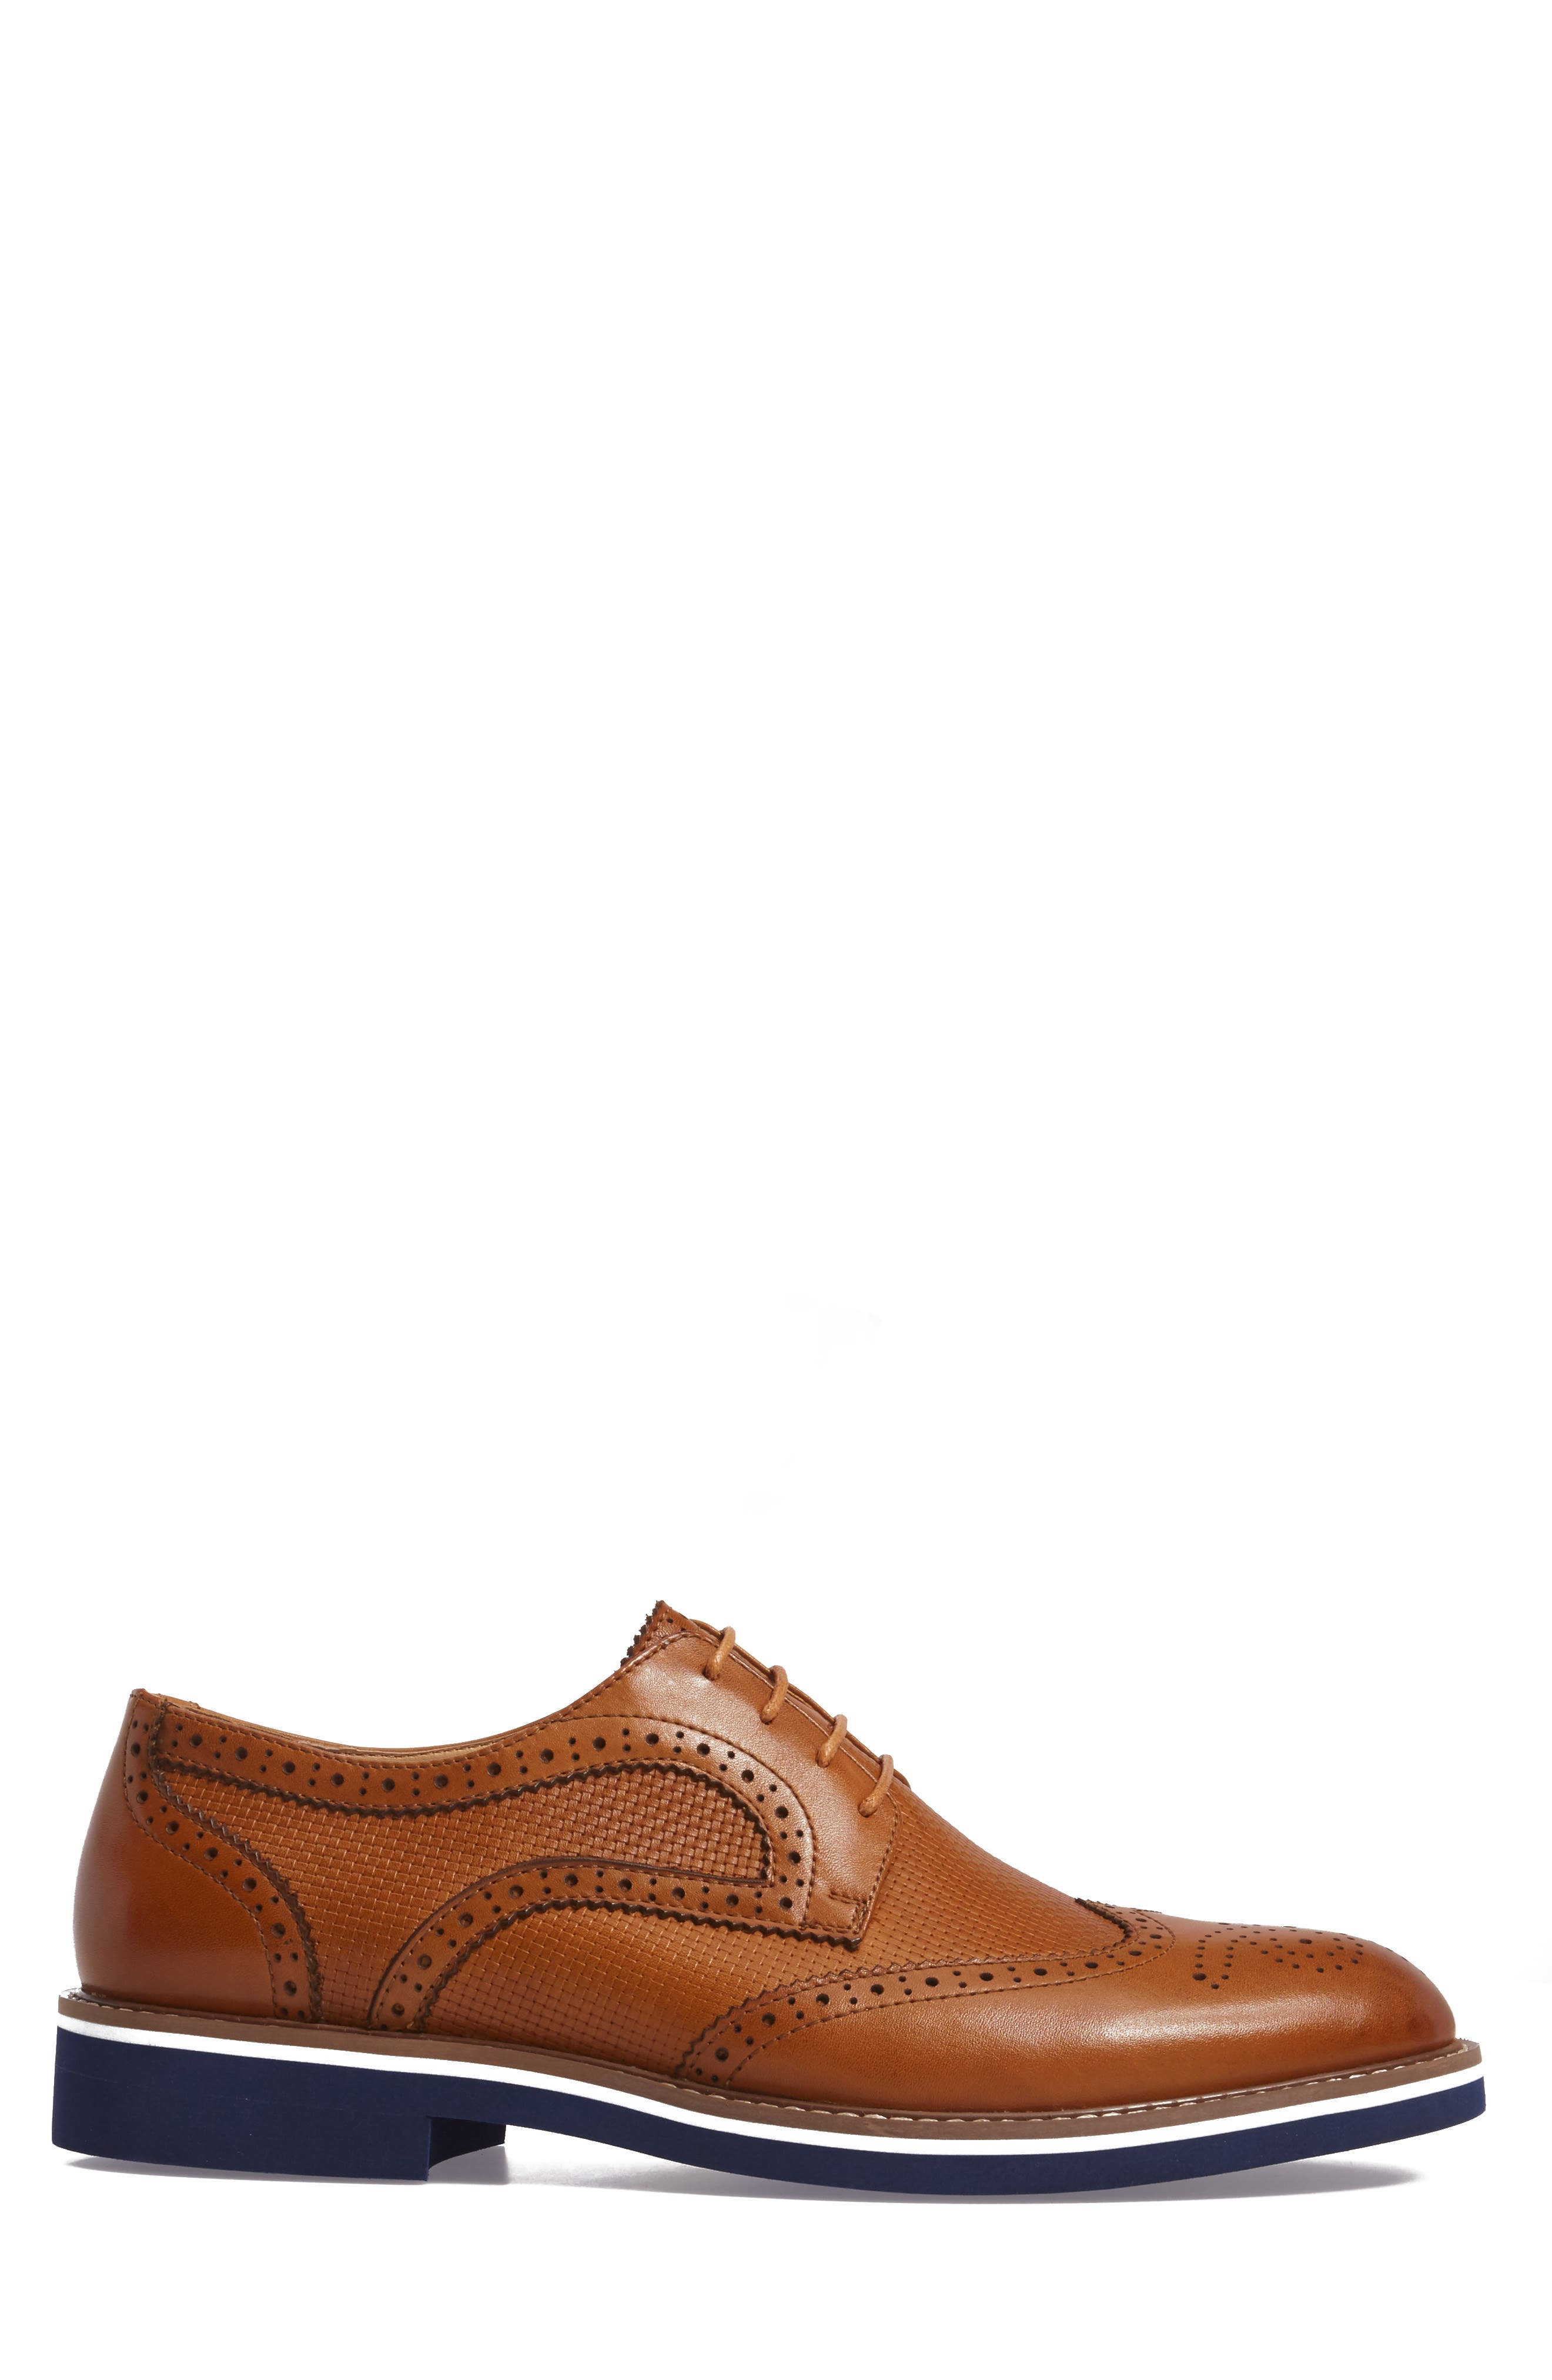 Northfields Spectator Shoe,                             Alternate thumbnail 3, color,                             Cognac Leather